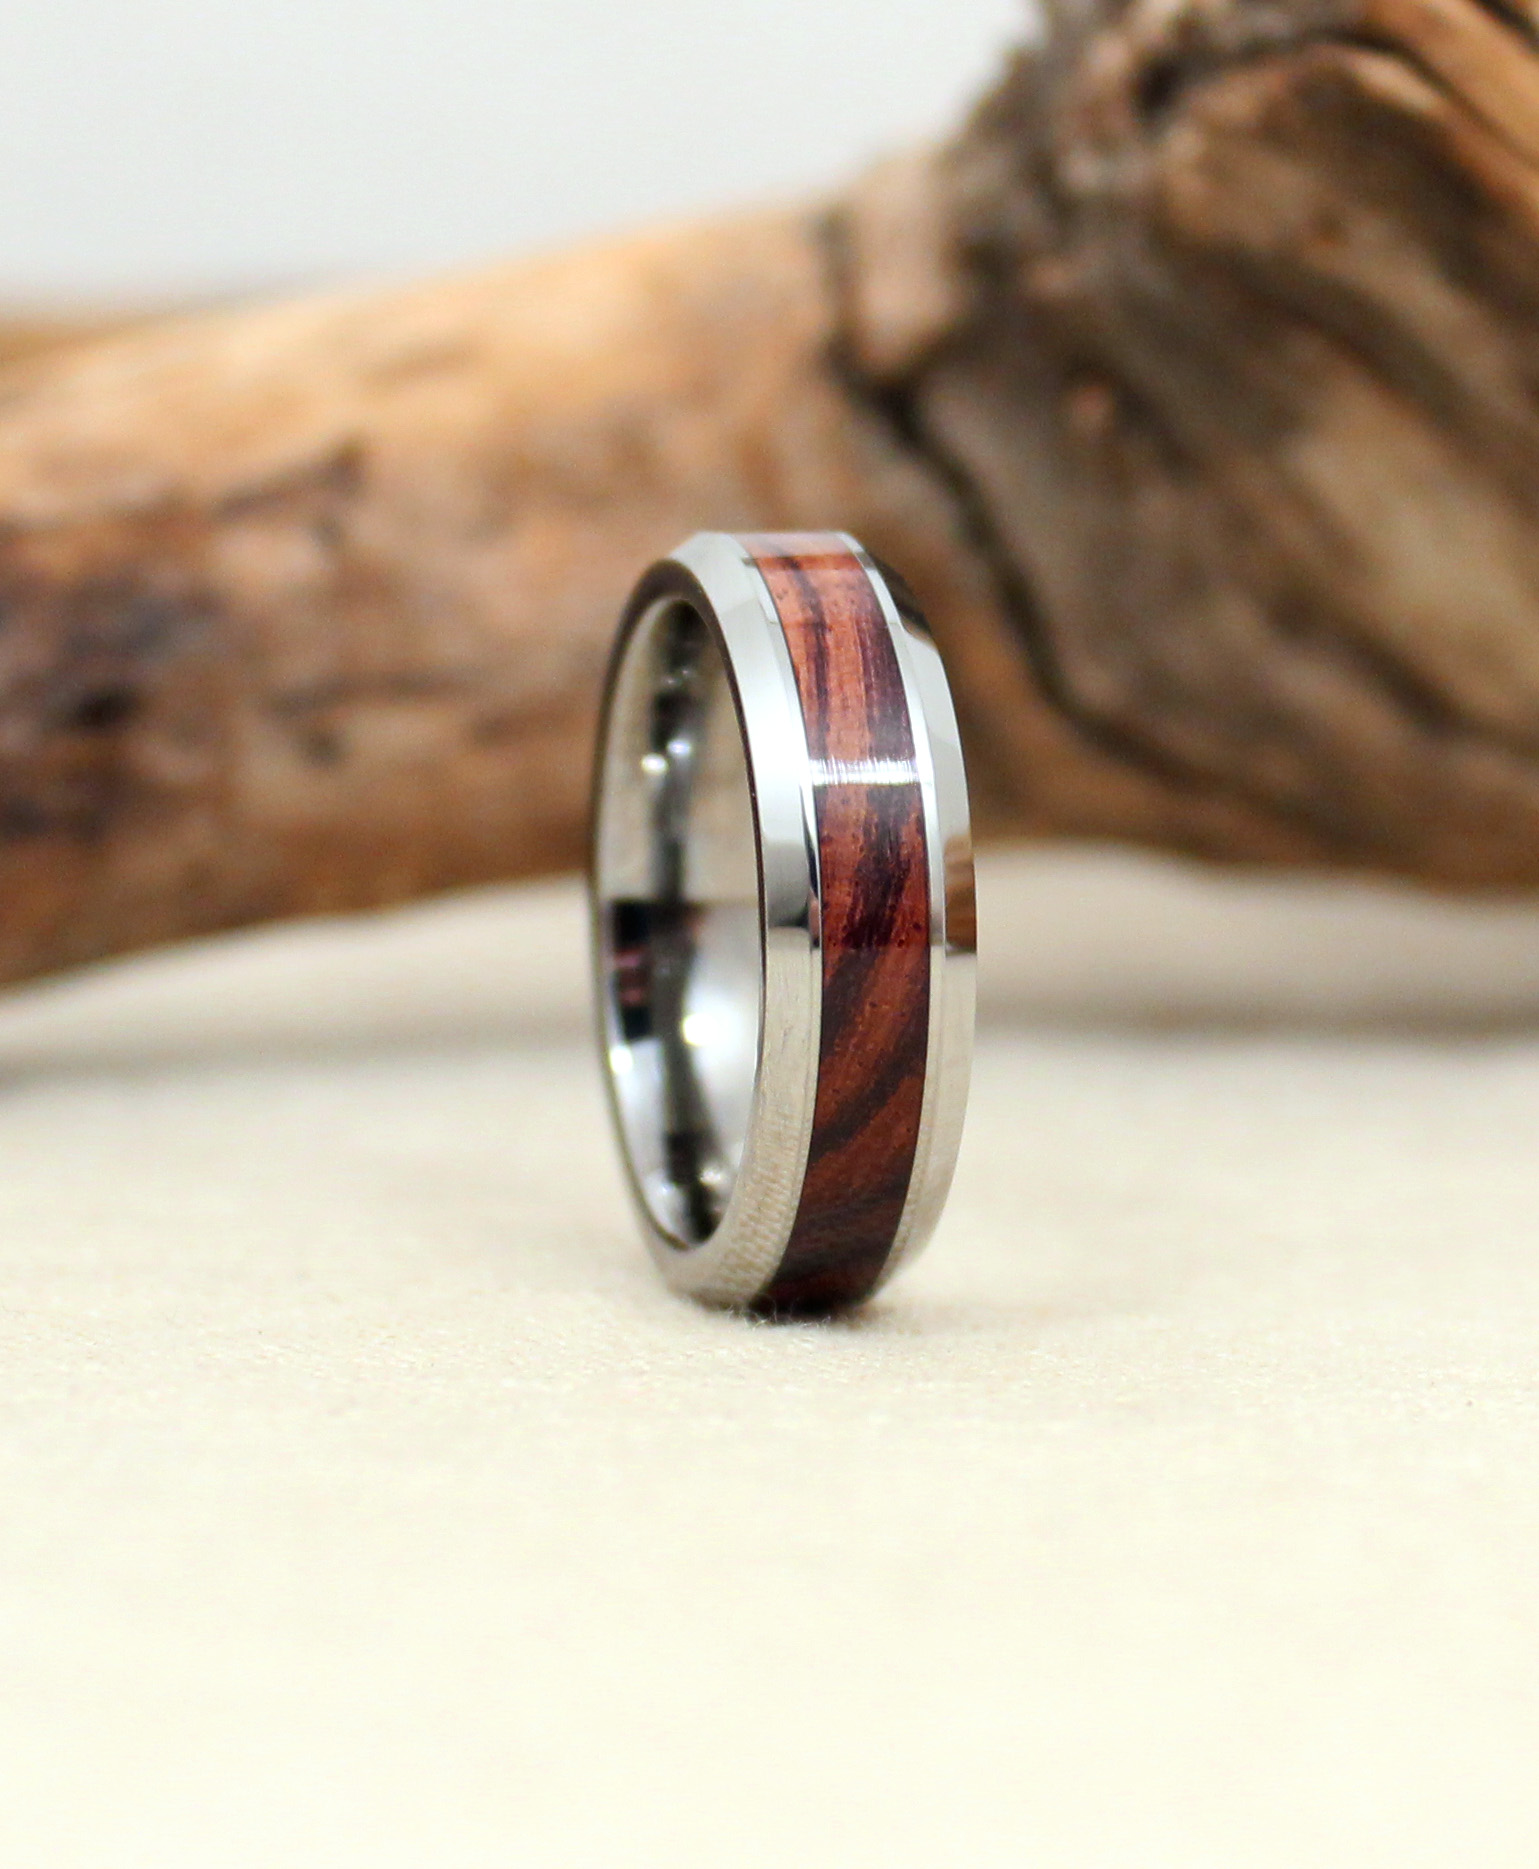 wood-wedding-ring-kingwood-tungsten-carbide-wedgewood.JPG